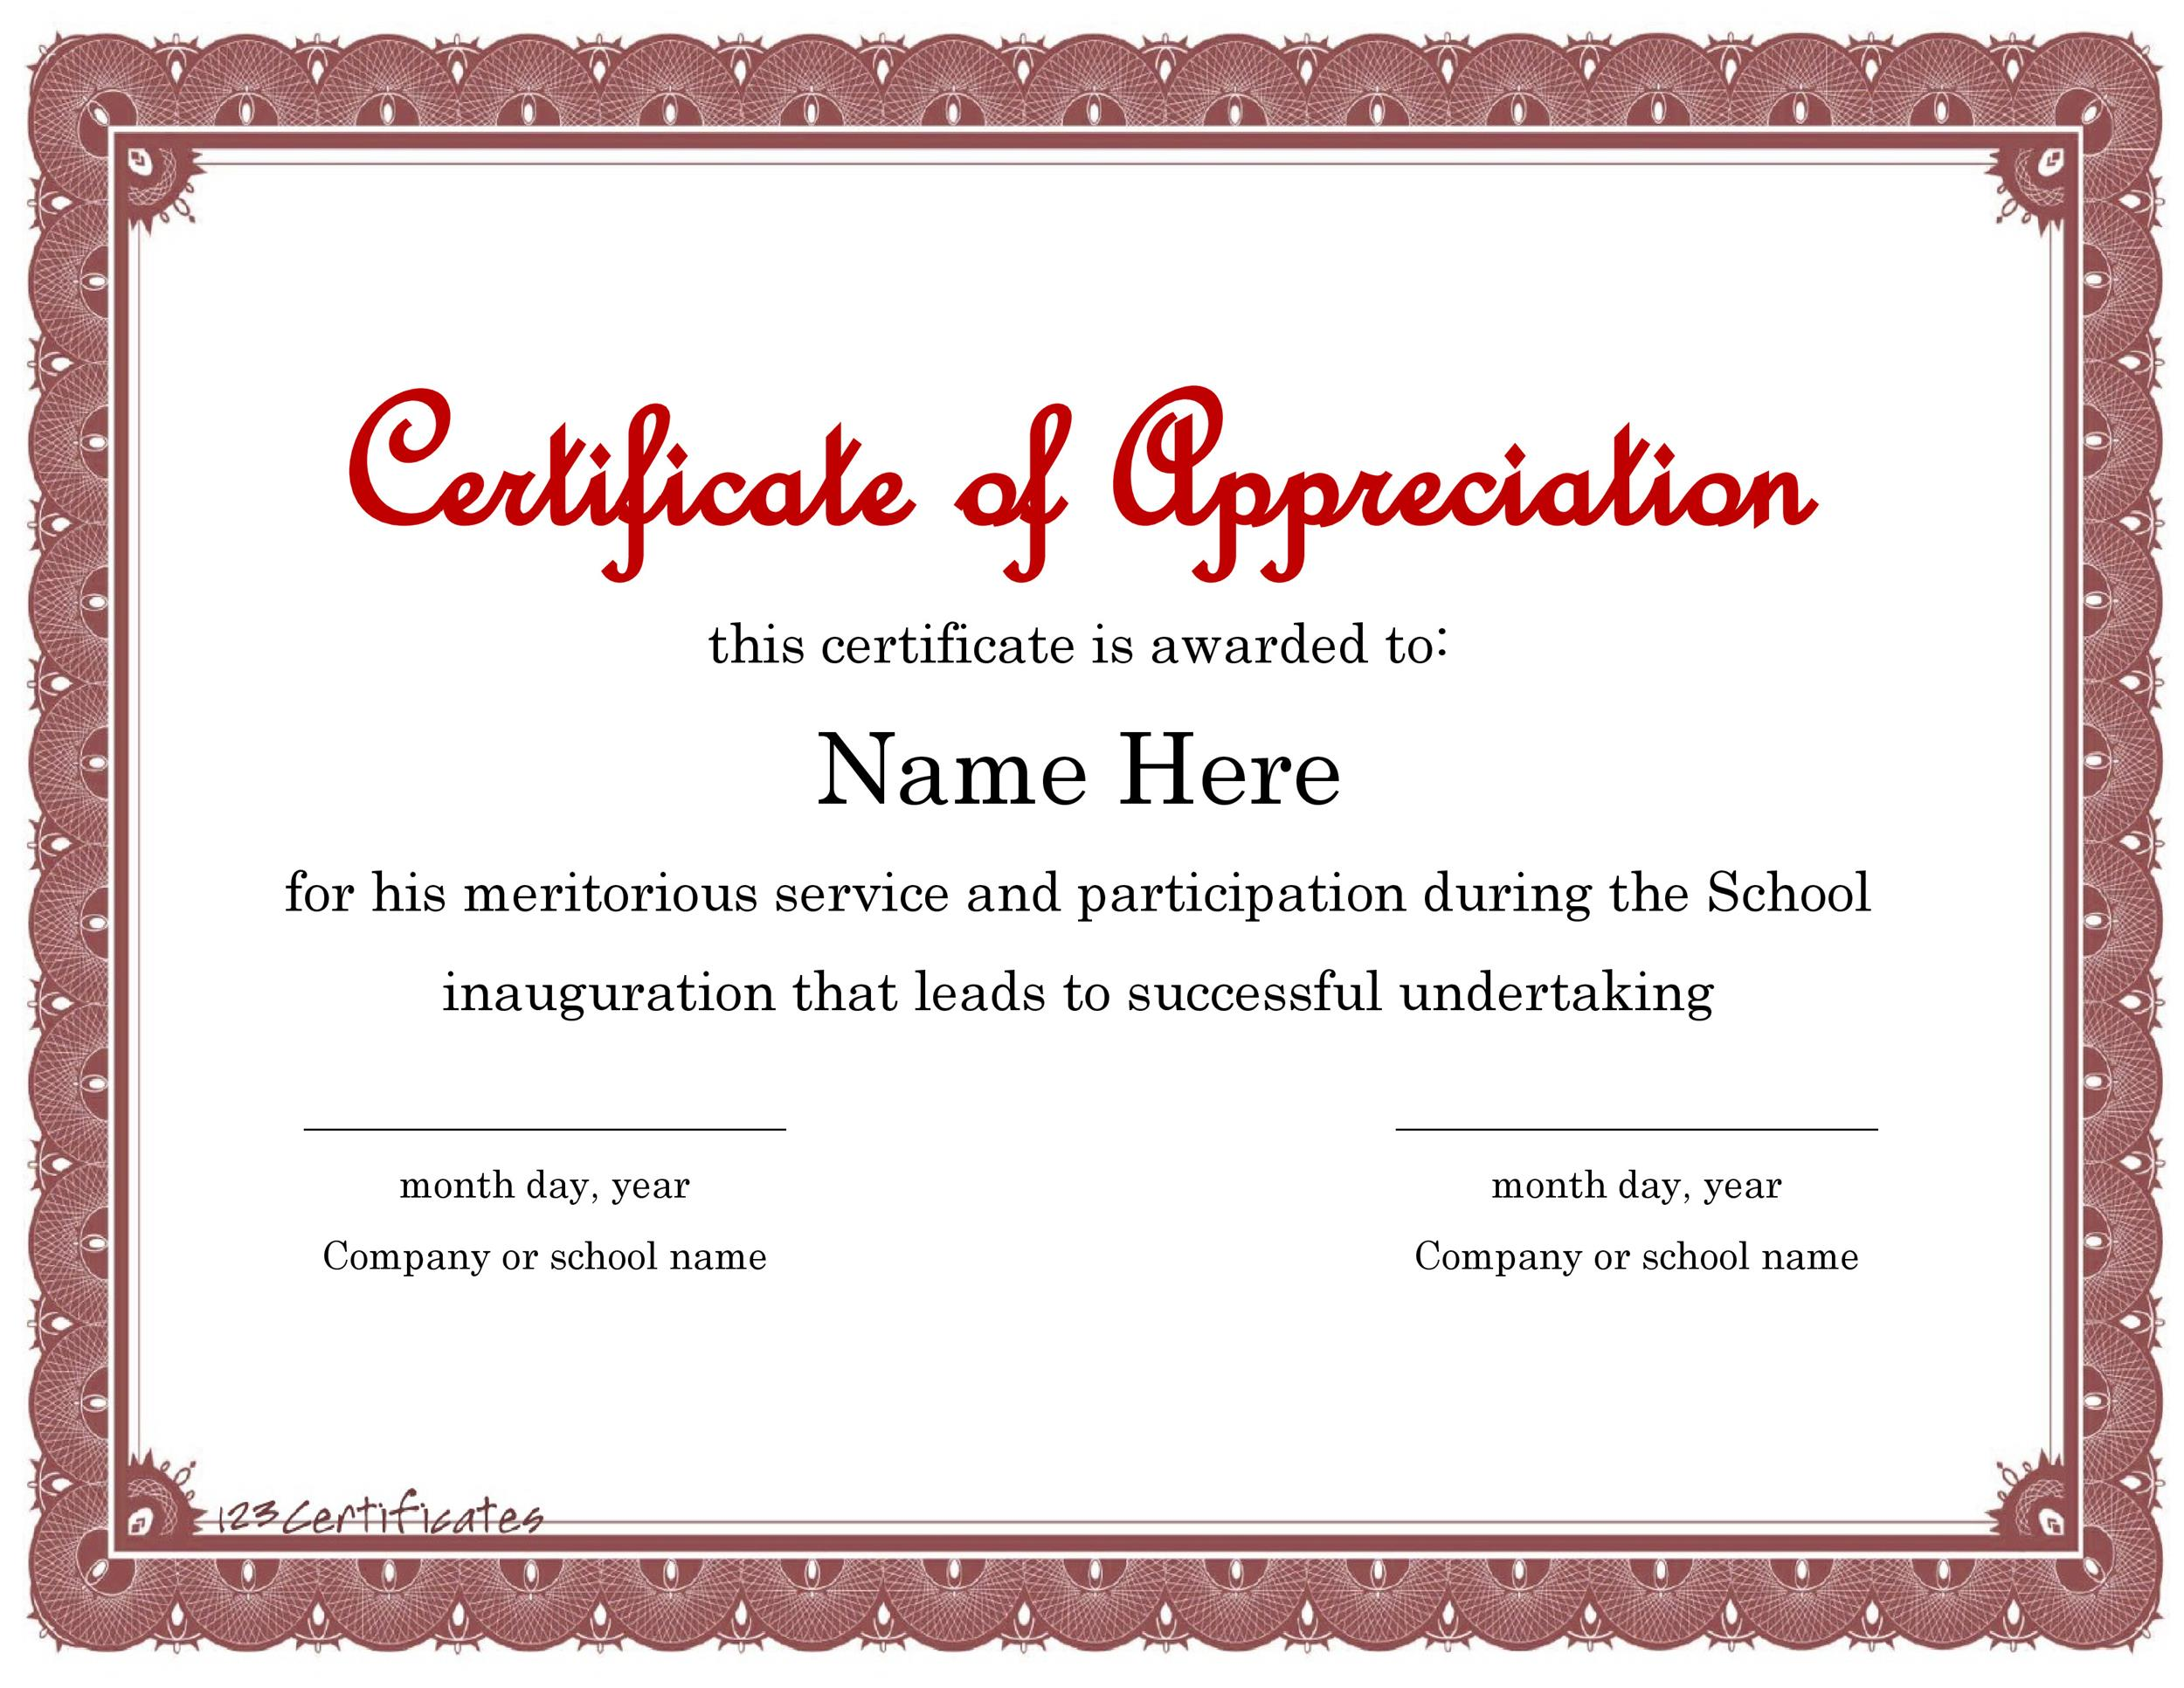 Printable Certificate Of Appreciation 01 Idea Certificate Of Appreciation Word Template